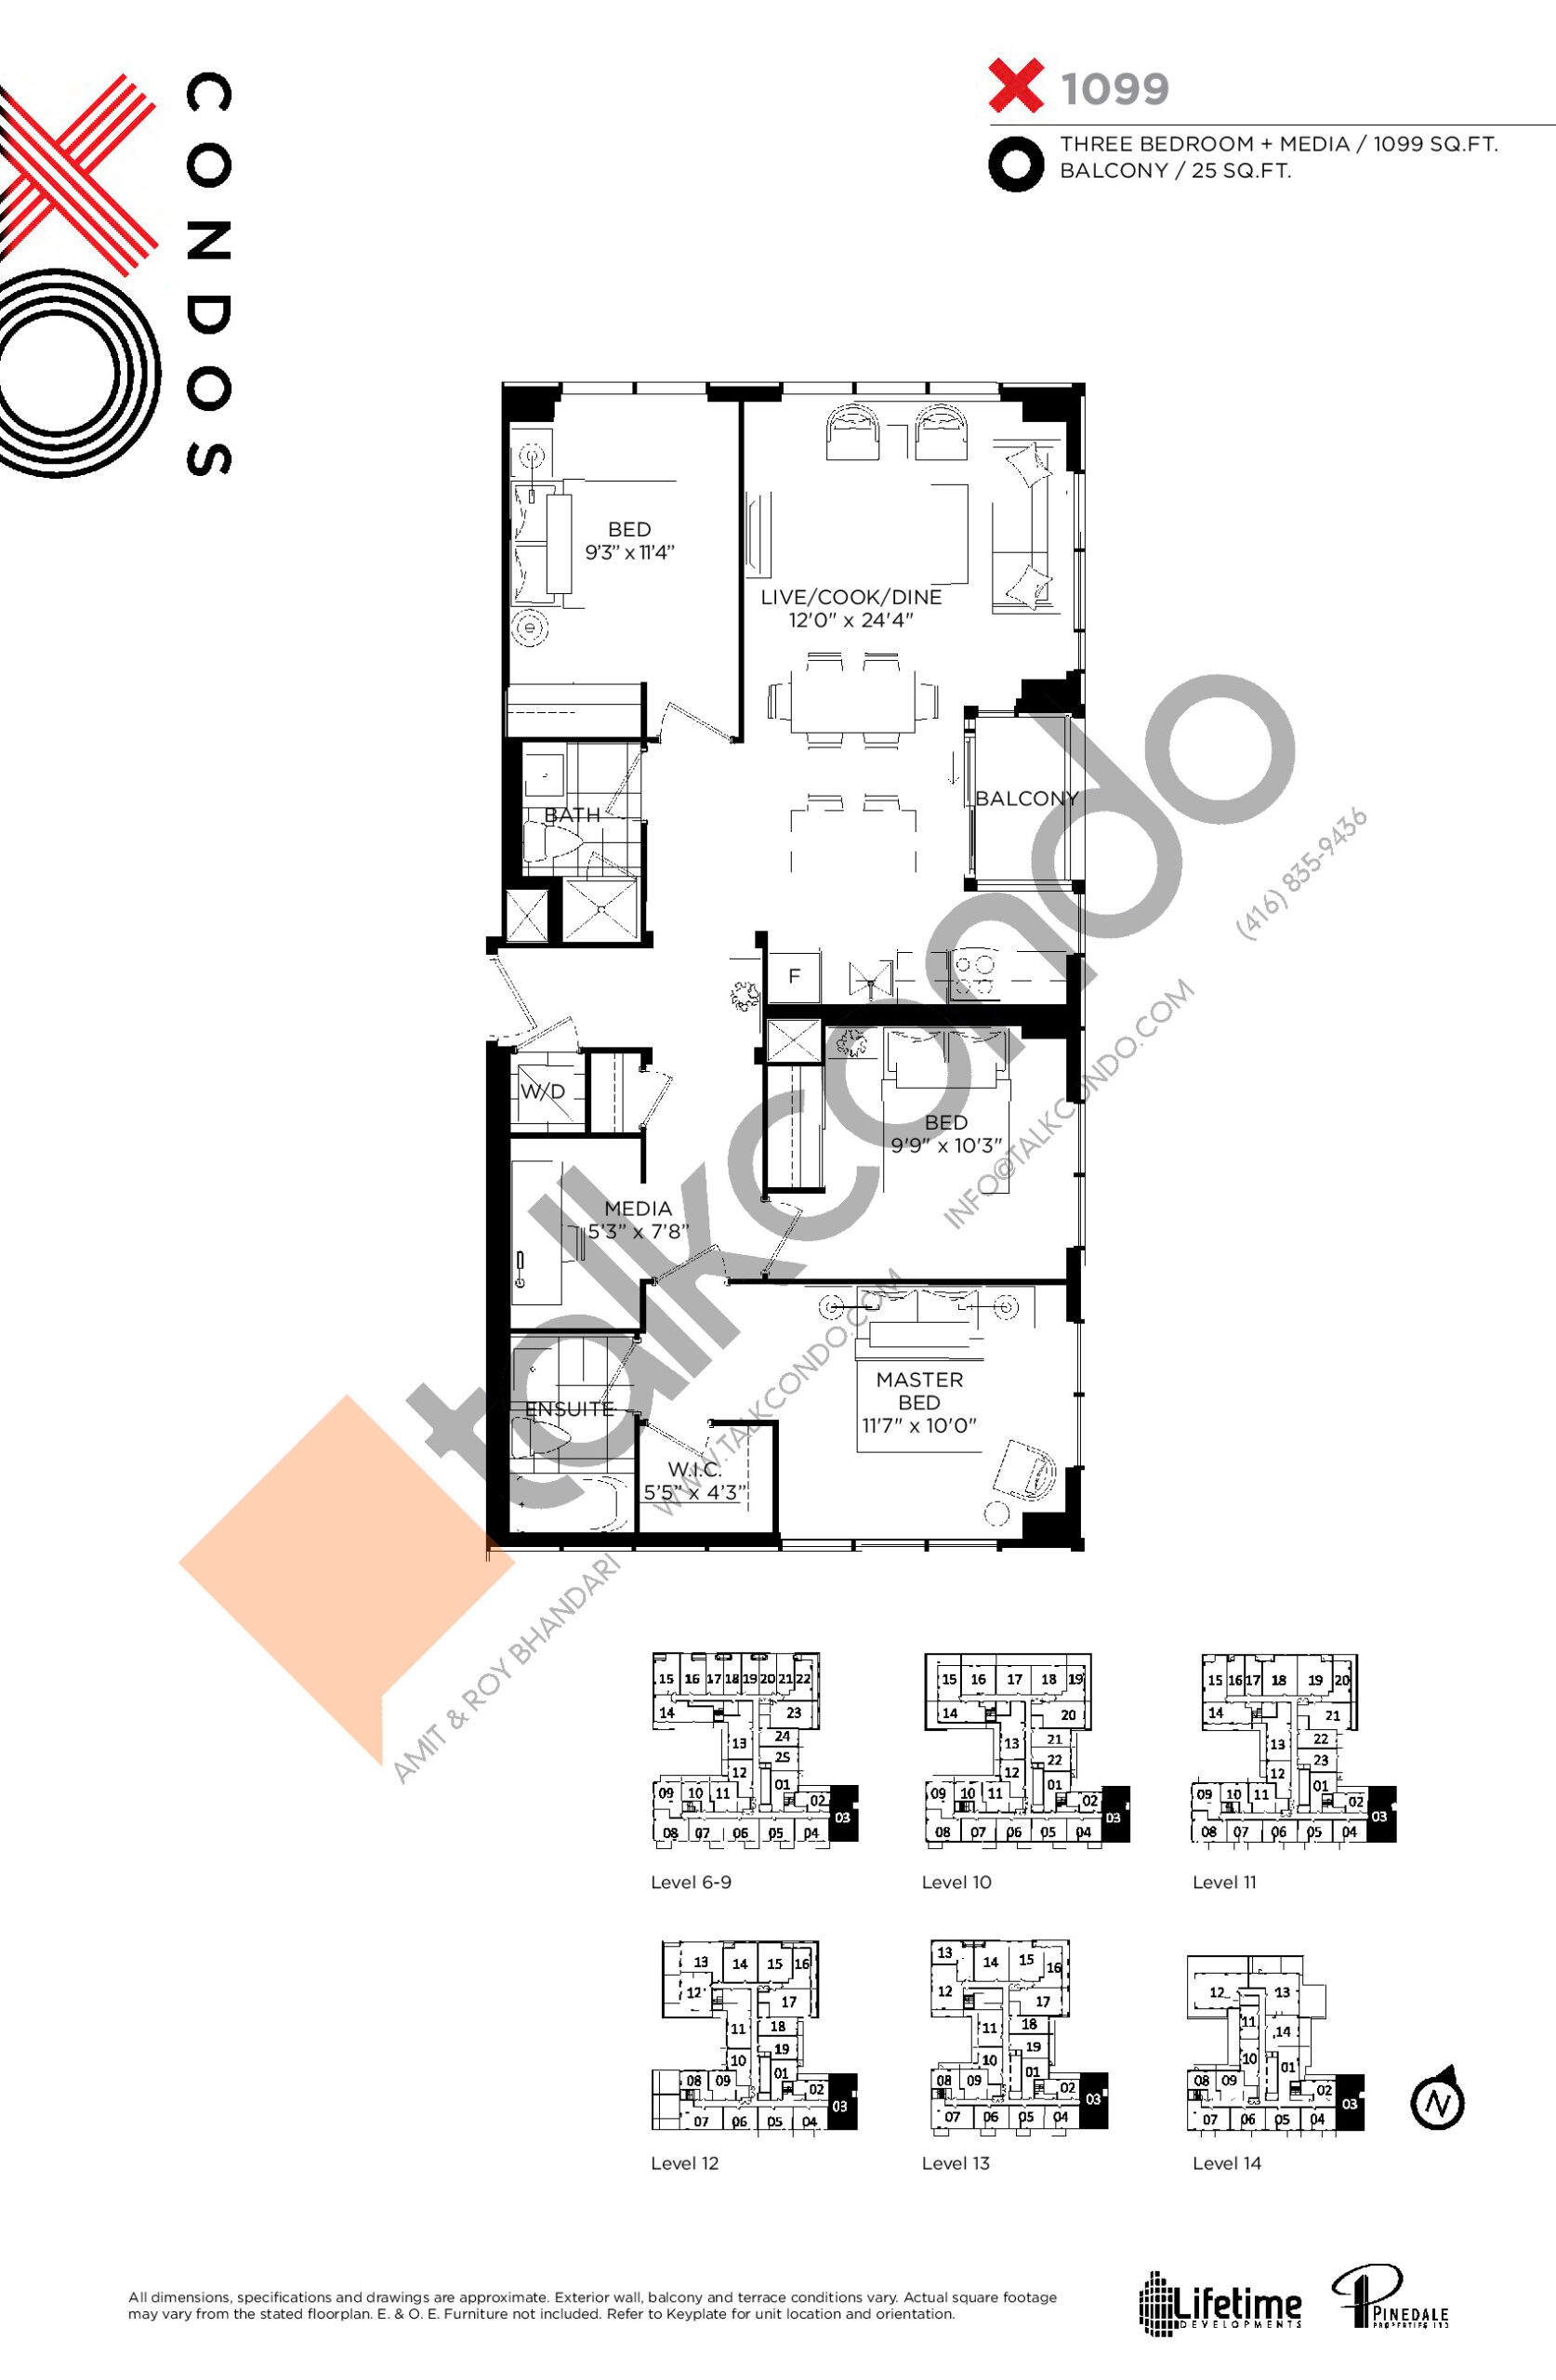 X1099 (Platinum Collection) Floor Plan at XO Condos - 1099 sq.ft